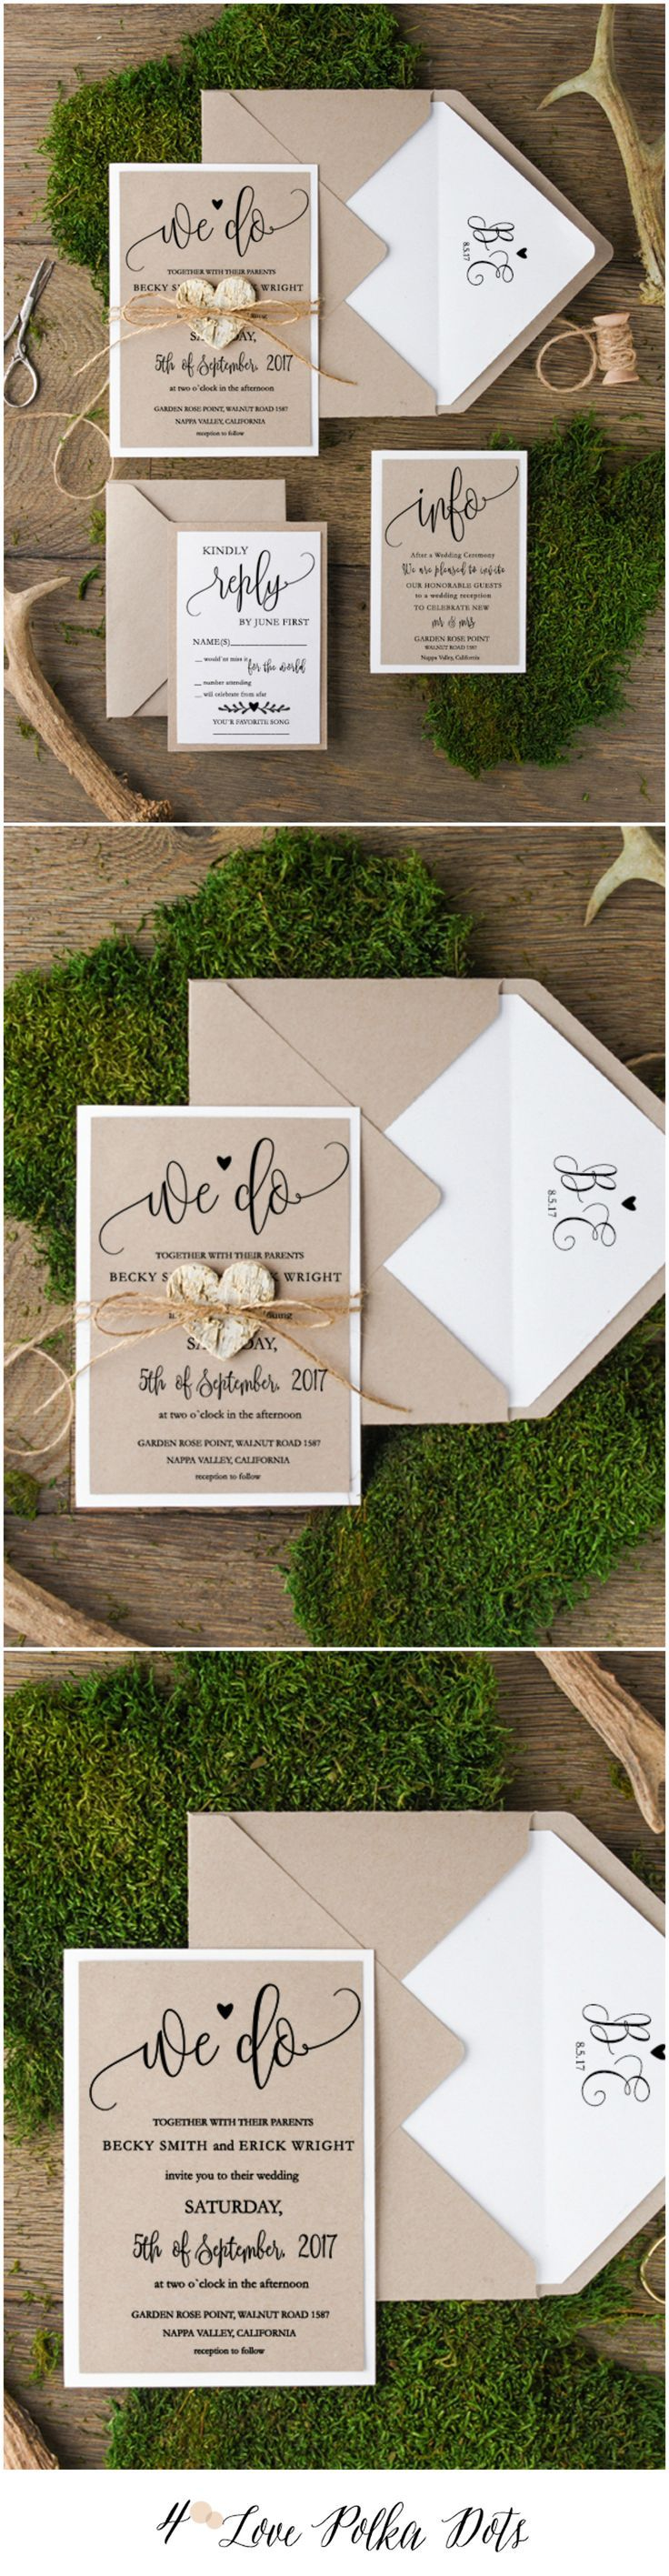 62 best Wedding Scrapbook Layouts and Projects images on Pinterest